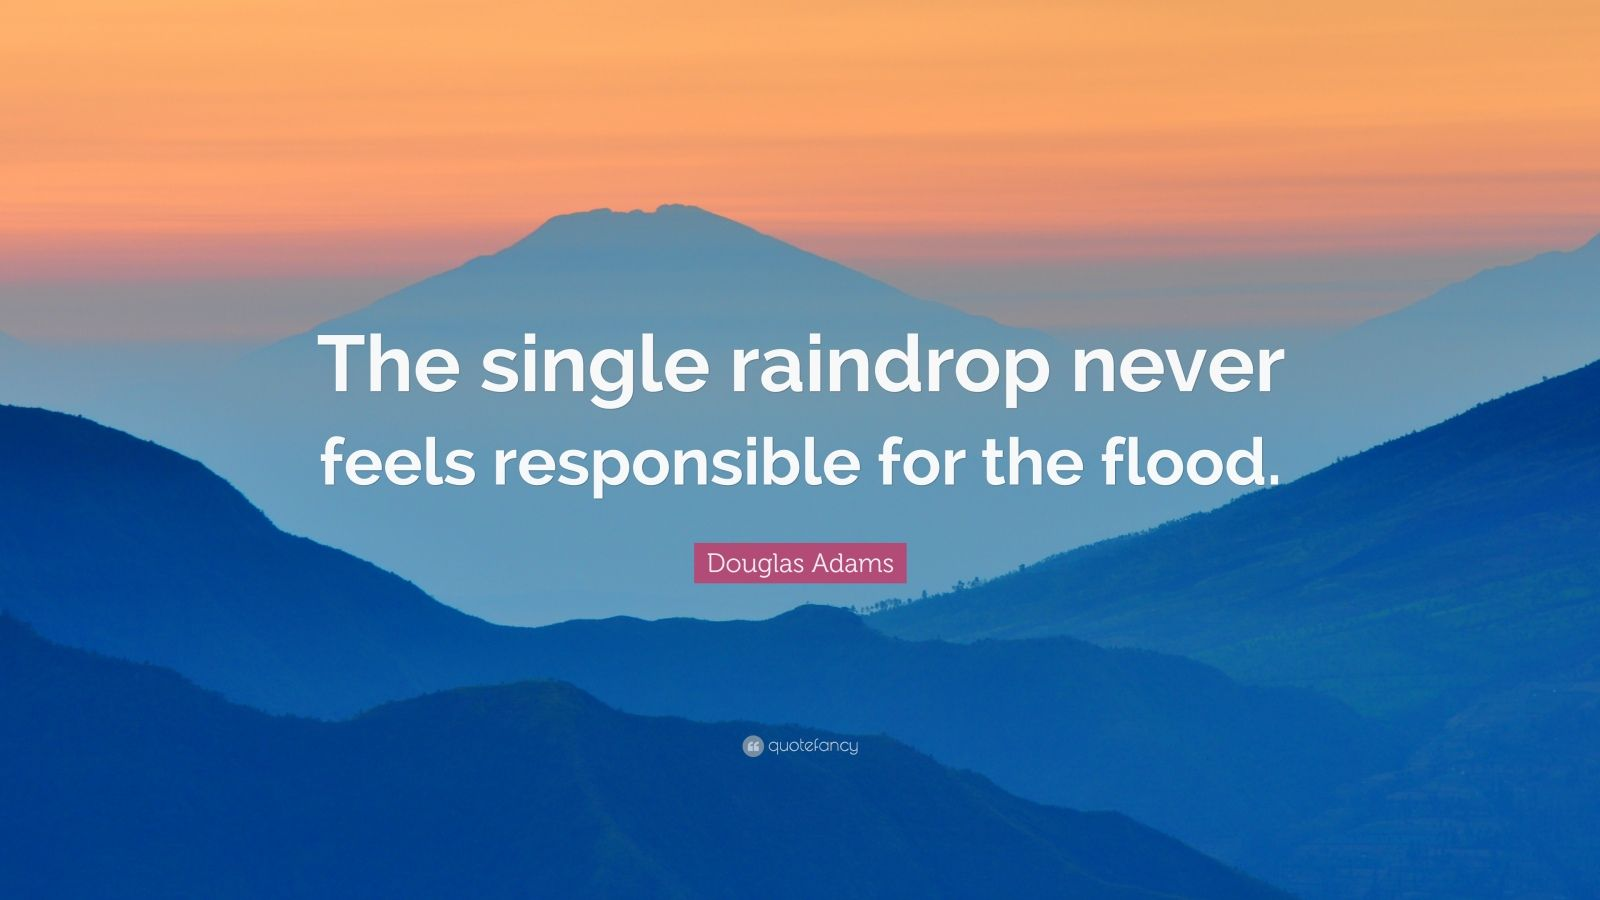 The single raindrop never feels responsible for the flood